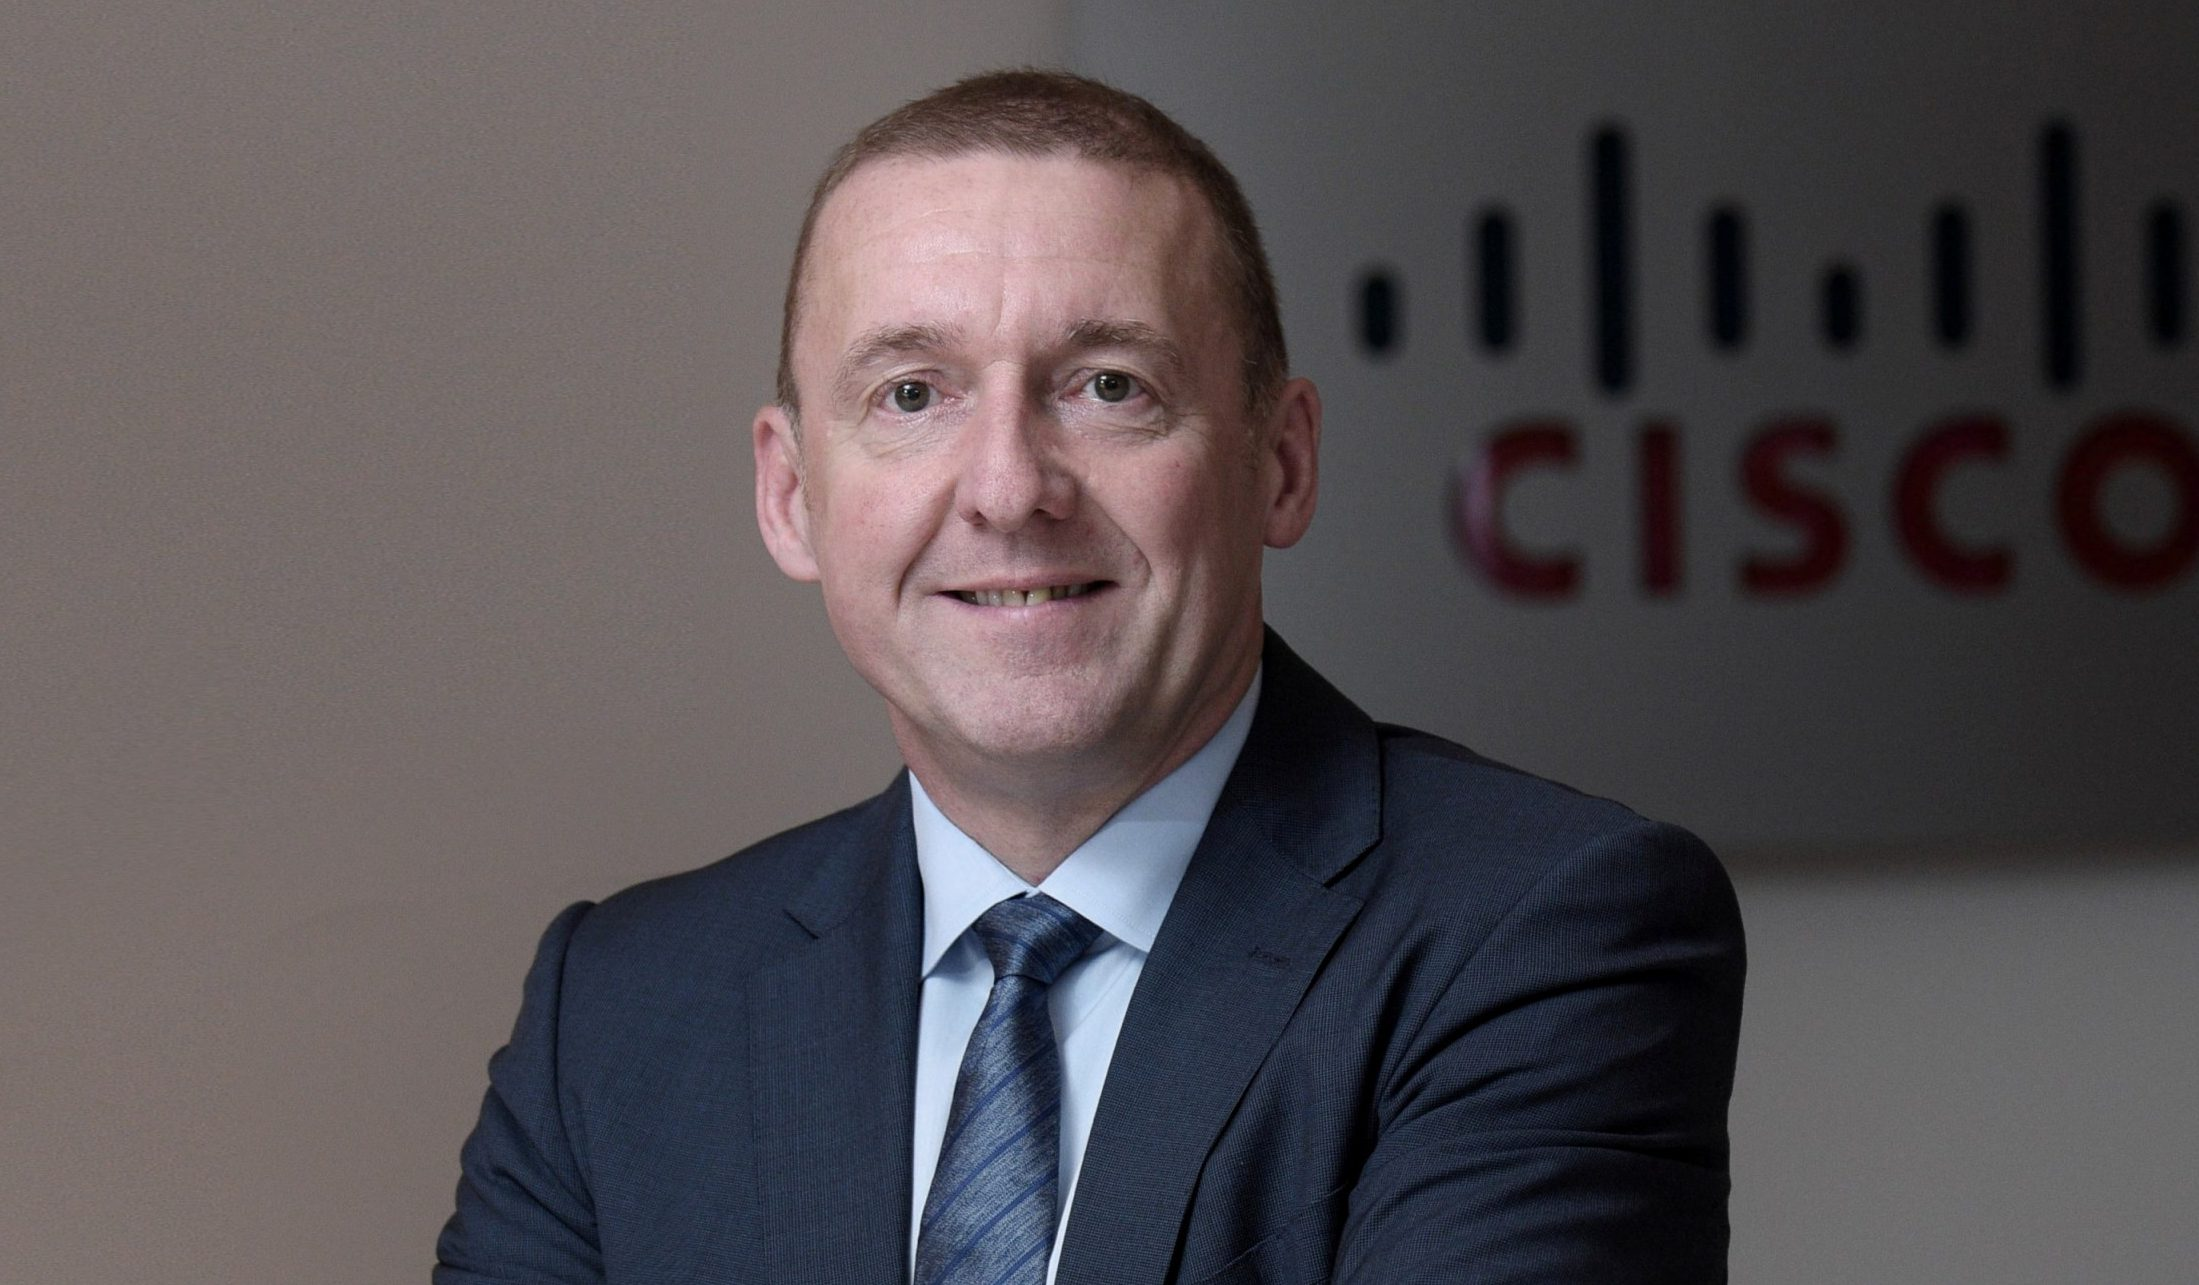 Cisco unveils new range of cloud based security solutions